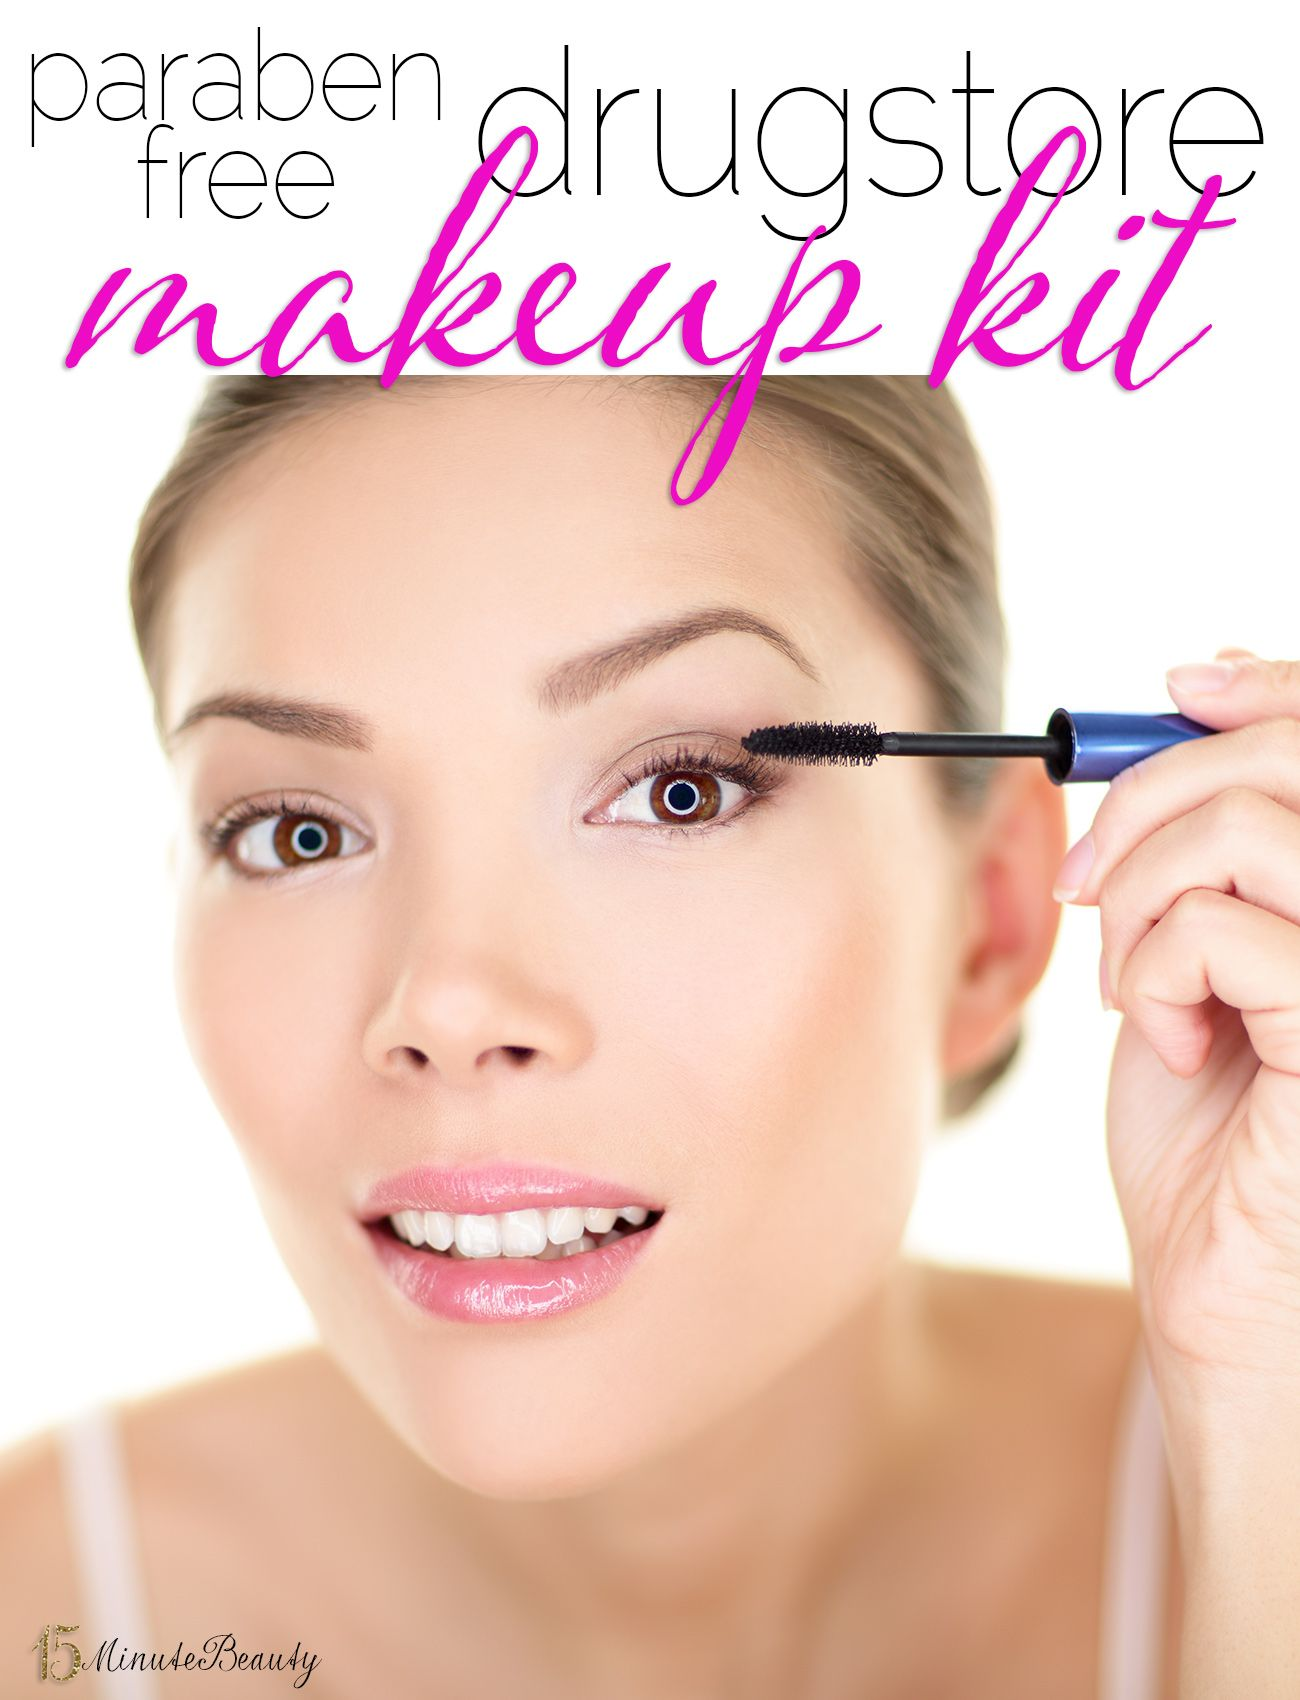 Paraben free drugstore makeup kit yes it is possible paraben paraben free drugstore makeup kit yes it is possible baditri Image collections